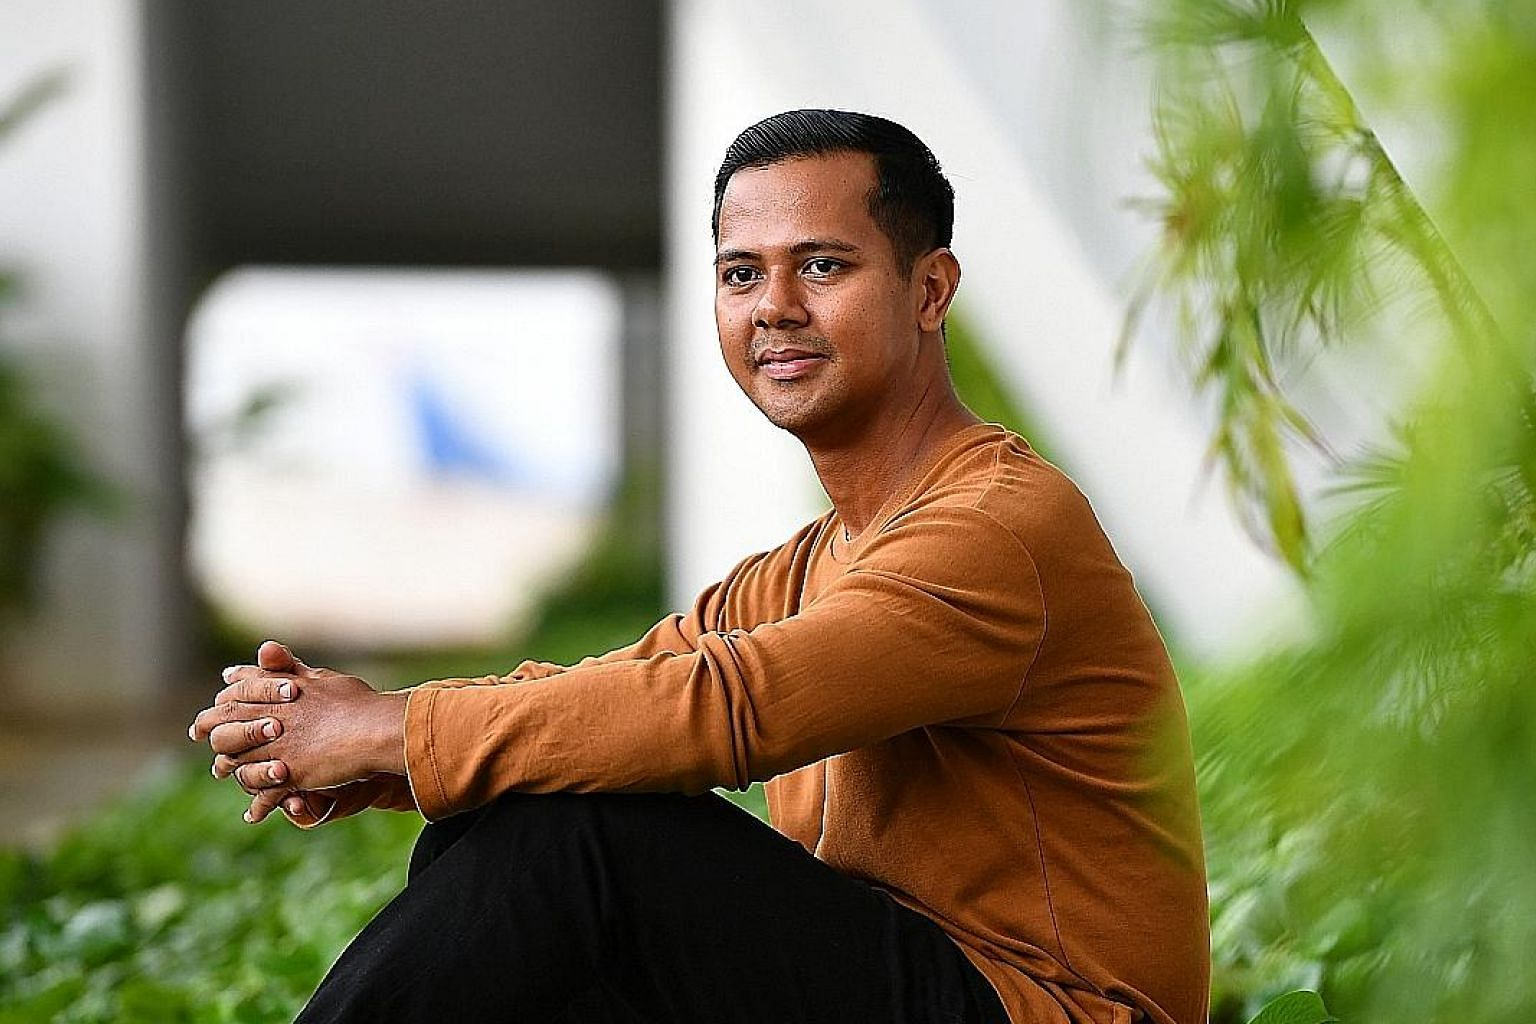 Mr Mohammad Azahari Abdul Razak, a former offender who is now completing his studies at Singapore Polytechnic, said families in dire straits sometimes just need people to befriend and support them.